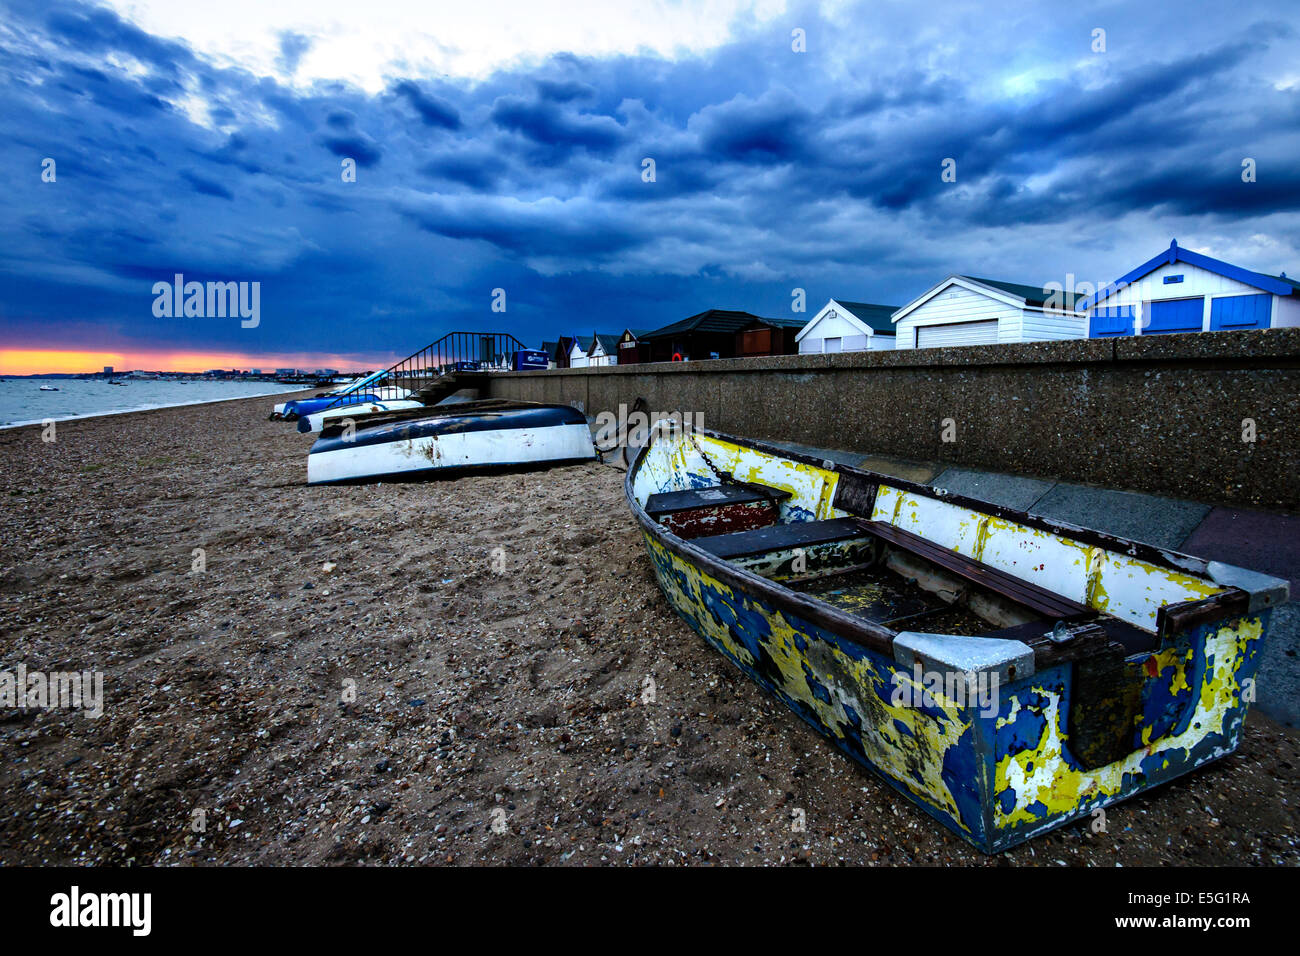 Southend-on-Sea beach at stormy evening. - Stock Image